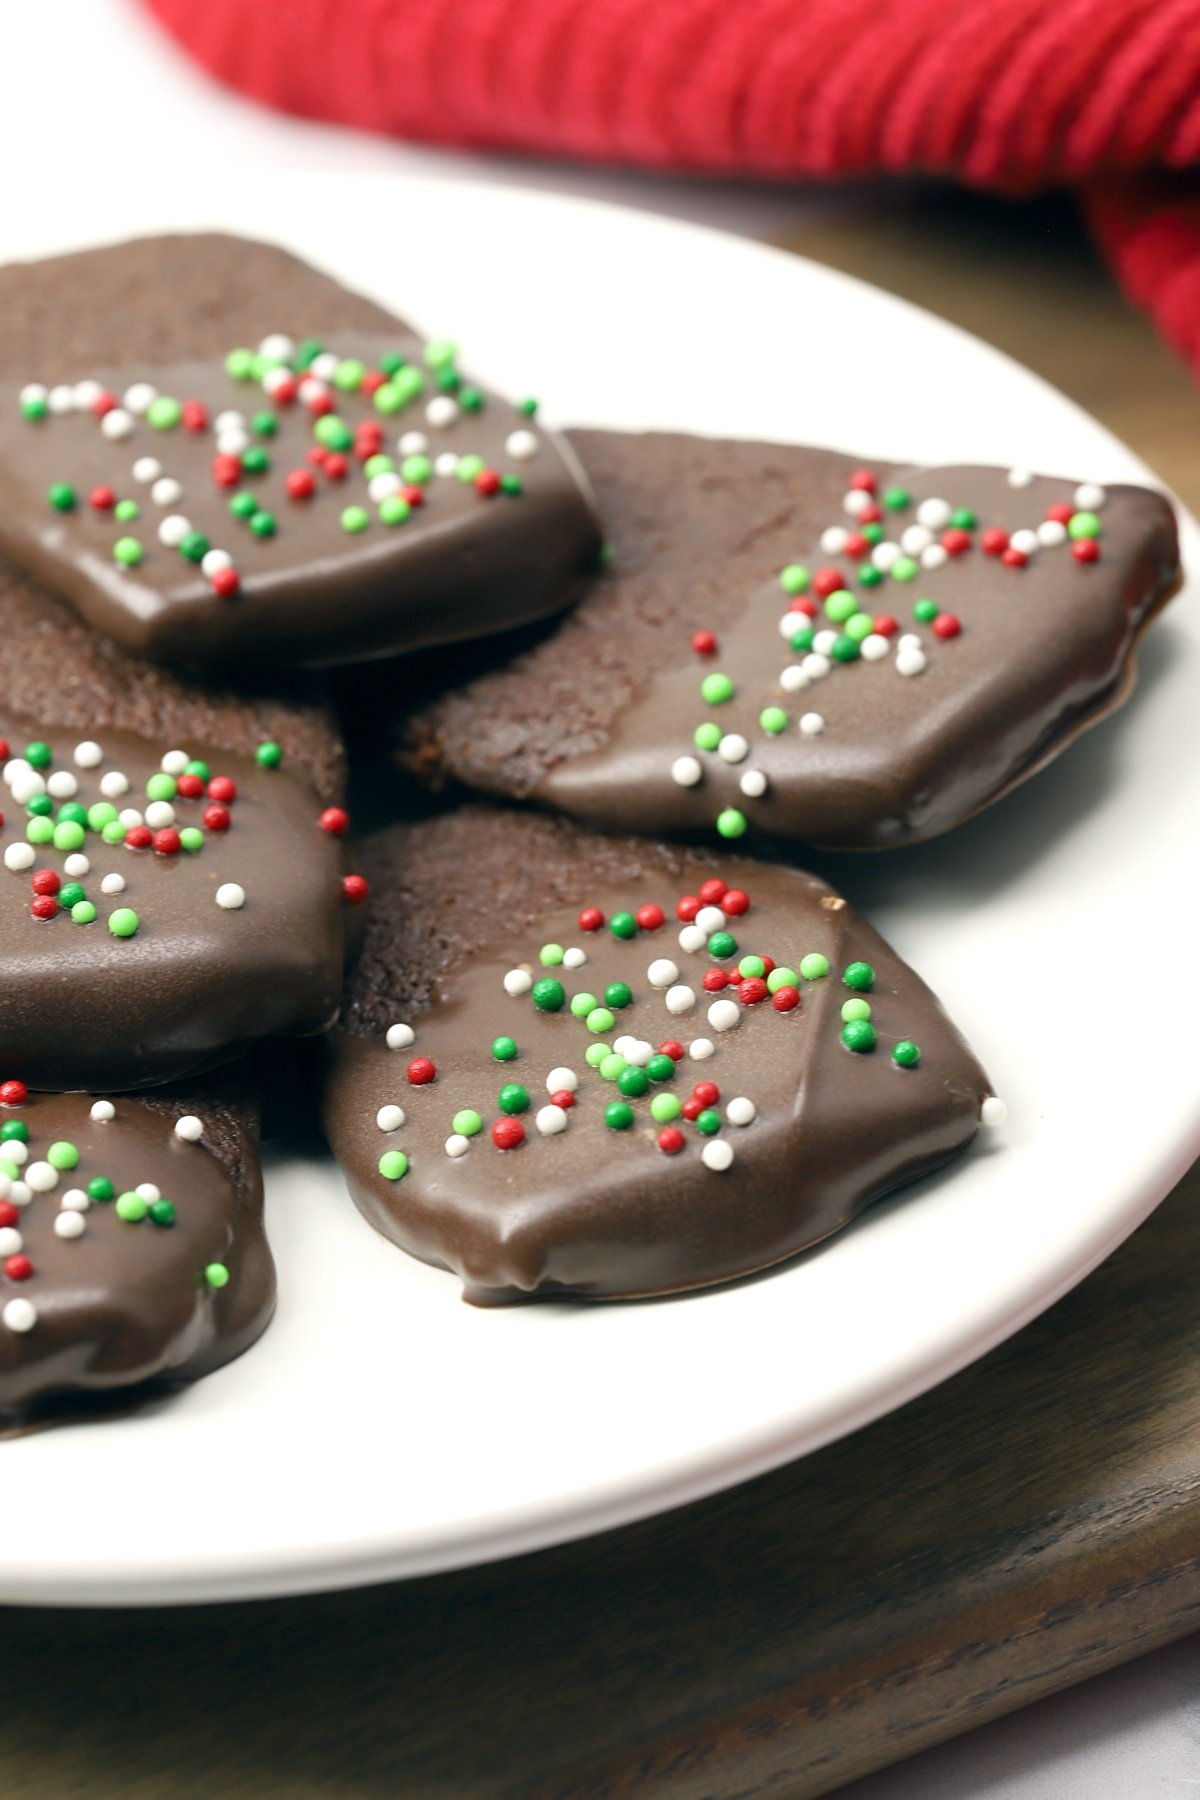 A plate of chocolate cookies.